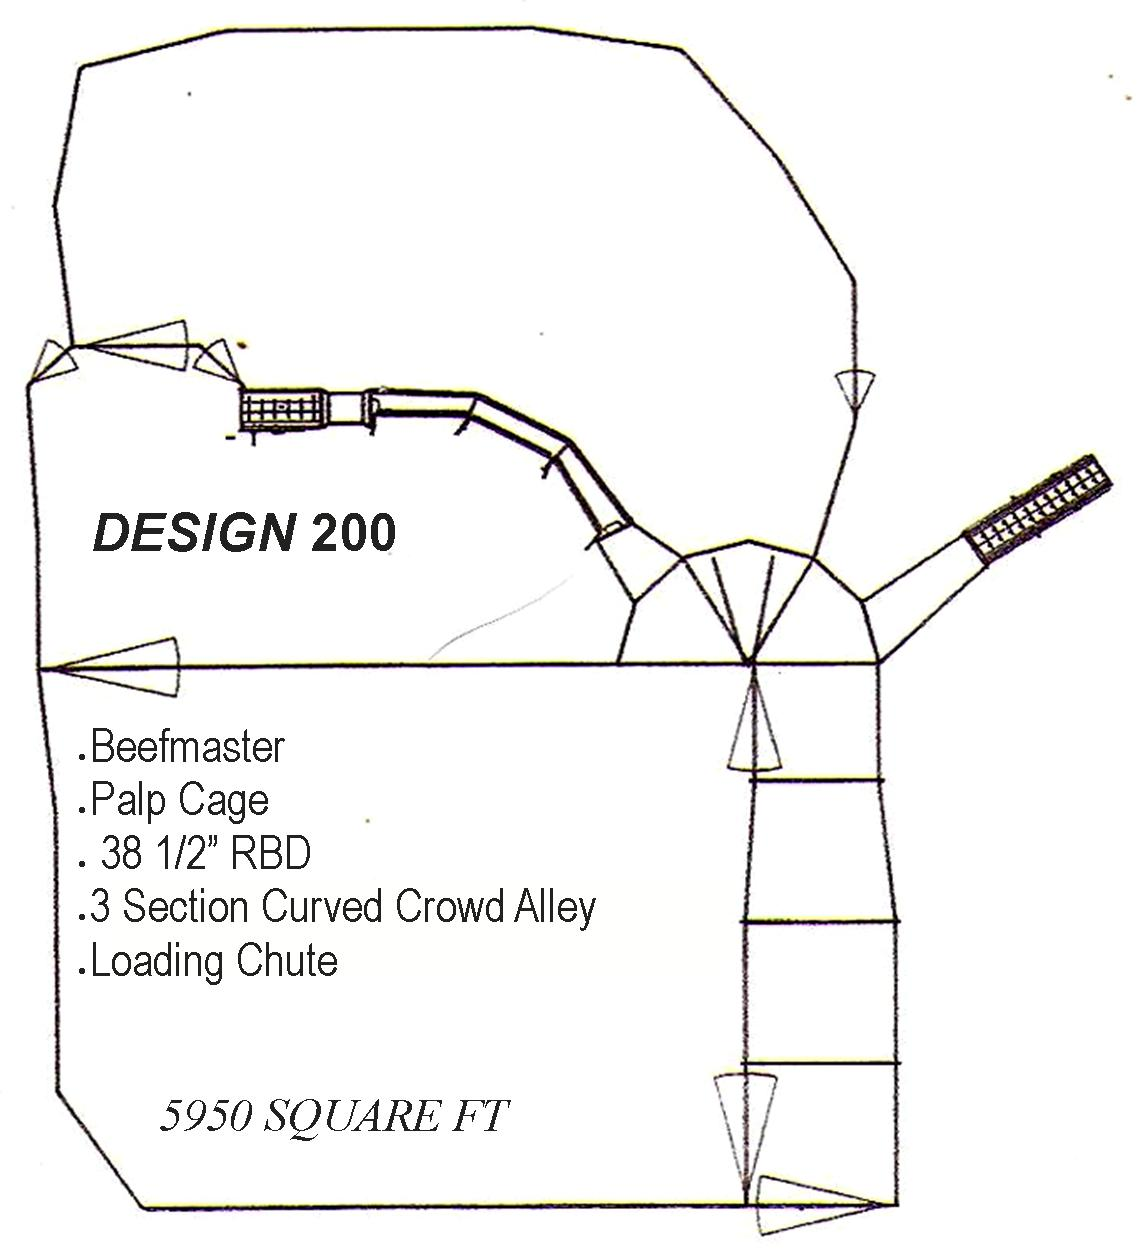 WW Livestock Sytems Corrals For Cattle Design 200